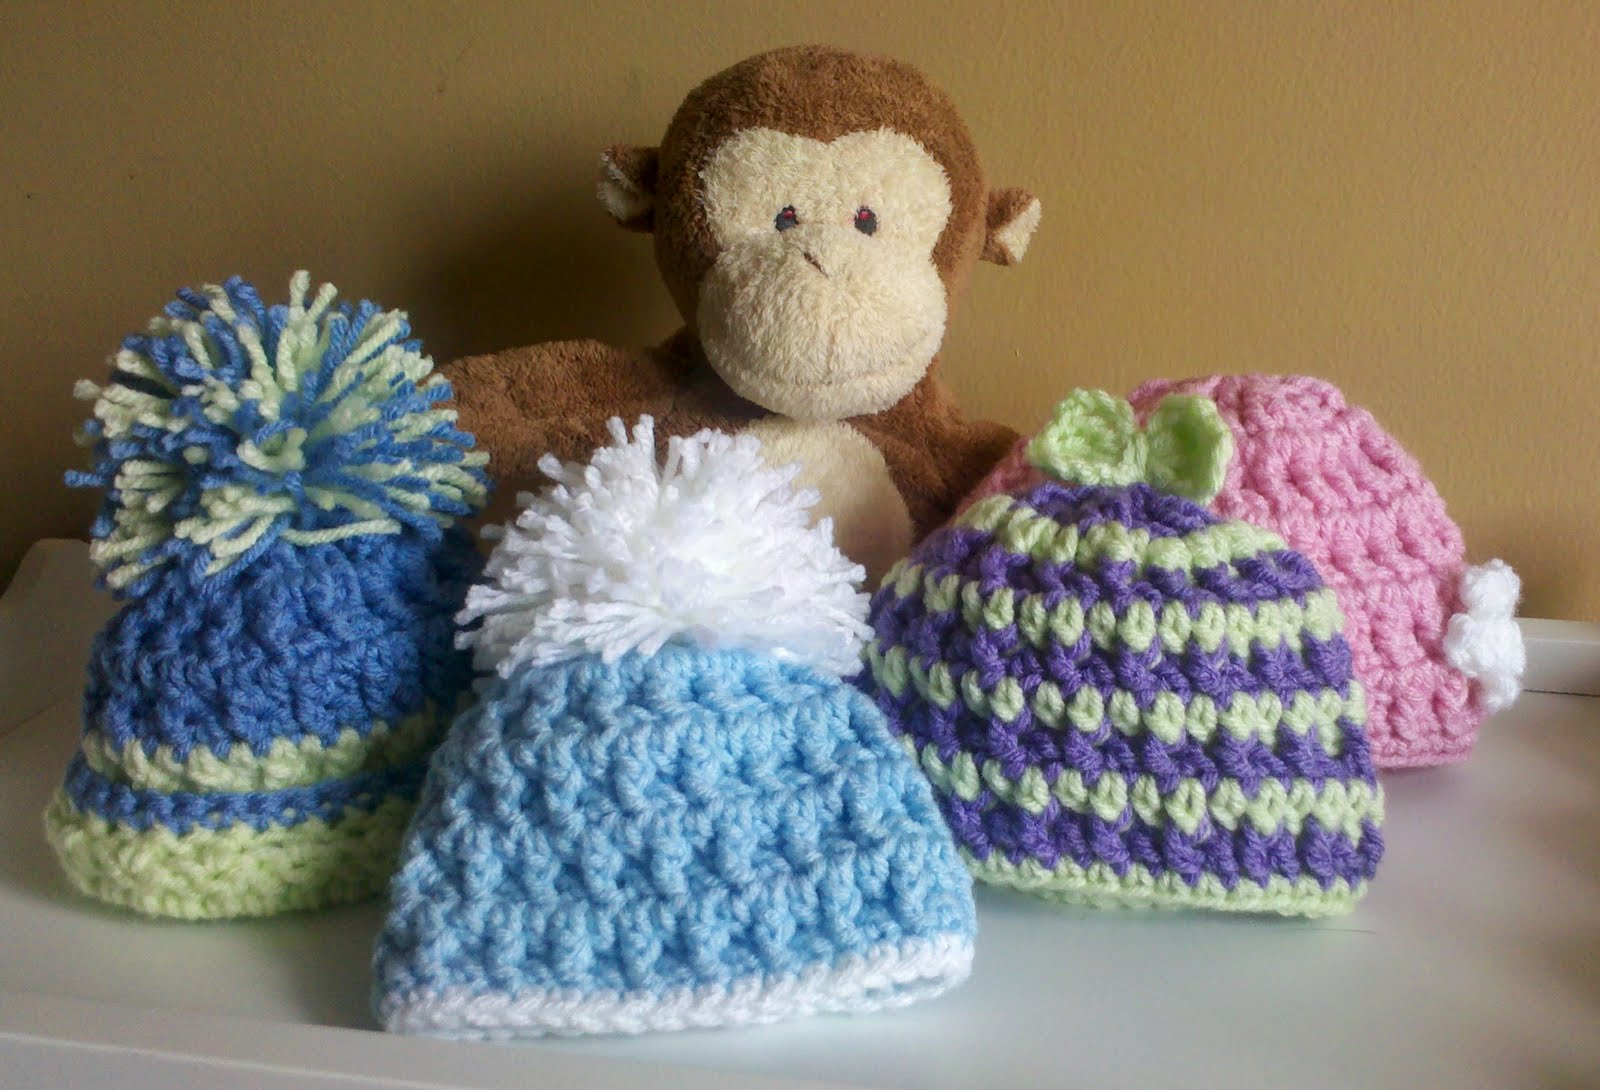 Crochet Patterns Free Childrens Hats : SmoothFox Crochet and Knit: SmoothFoxs Kool Kids Hats ...